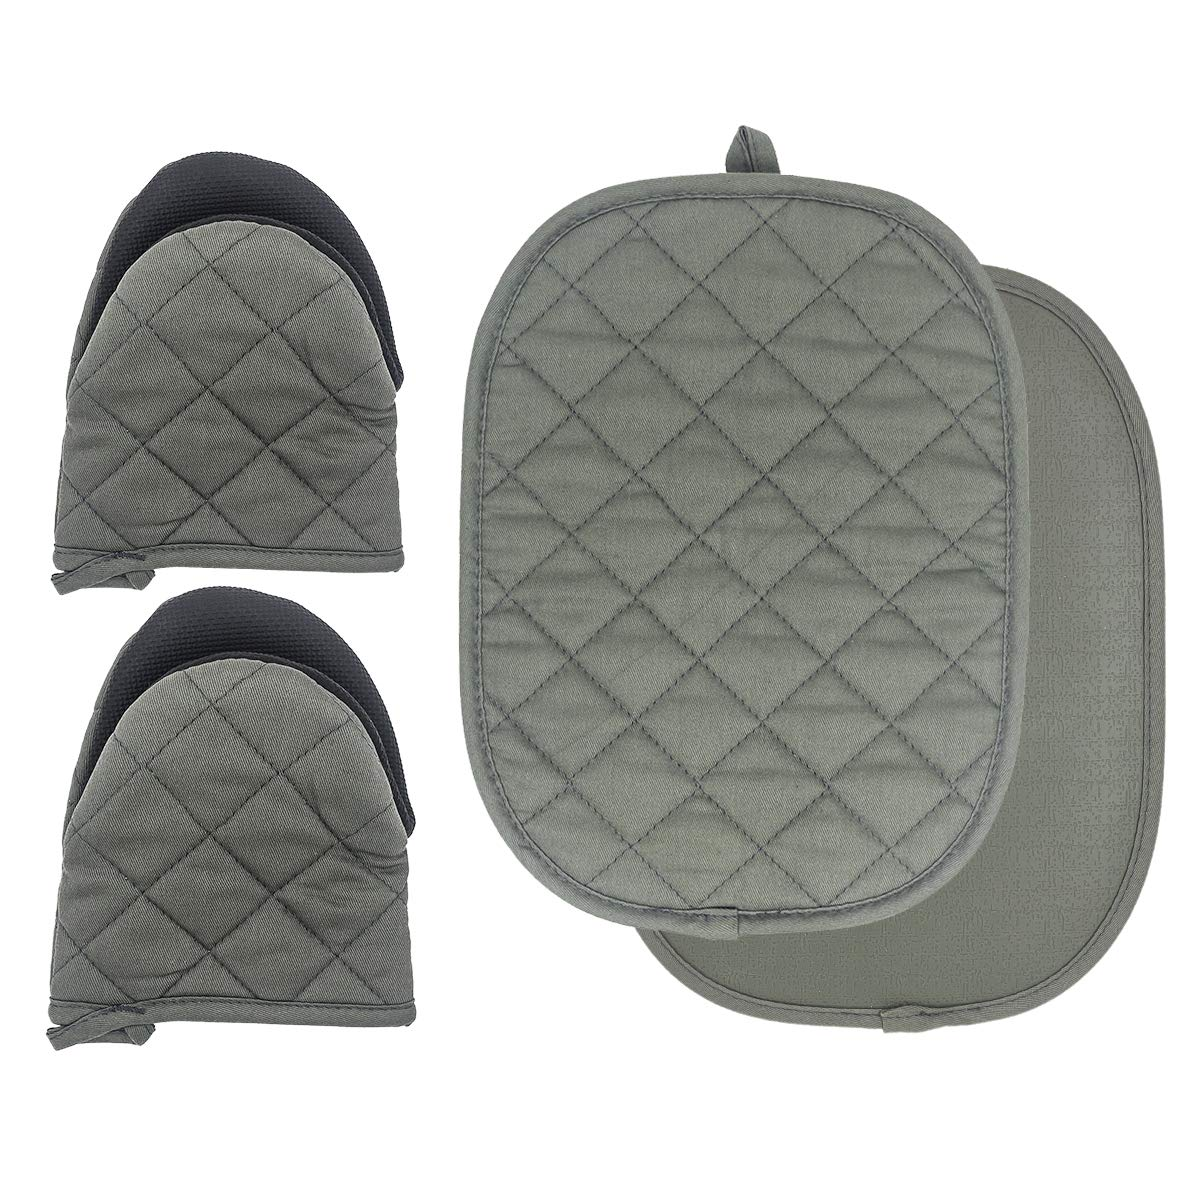 TOPSKY Oven Mitts and Pot Holders Kitchen Aid Heat Resistant Silicone No Slip Pad 12 x 9 and Gloves 7 x 6, ArmyGreen(2pcs Oven Mitts+ 2pcs potholder)